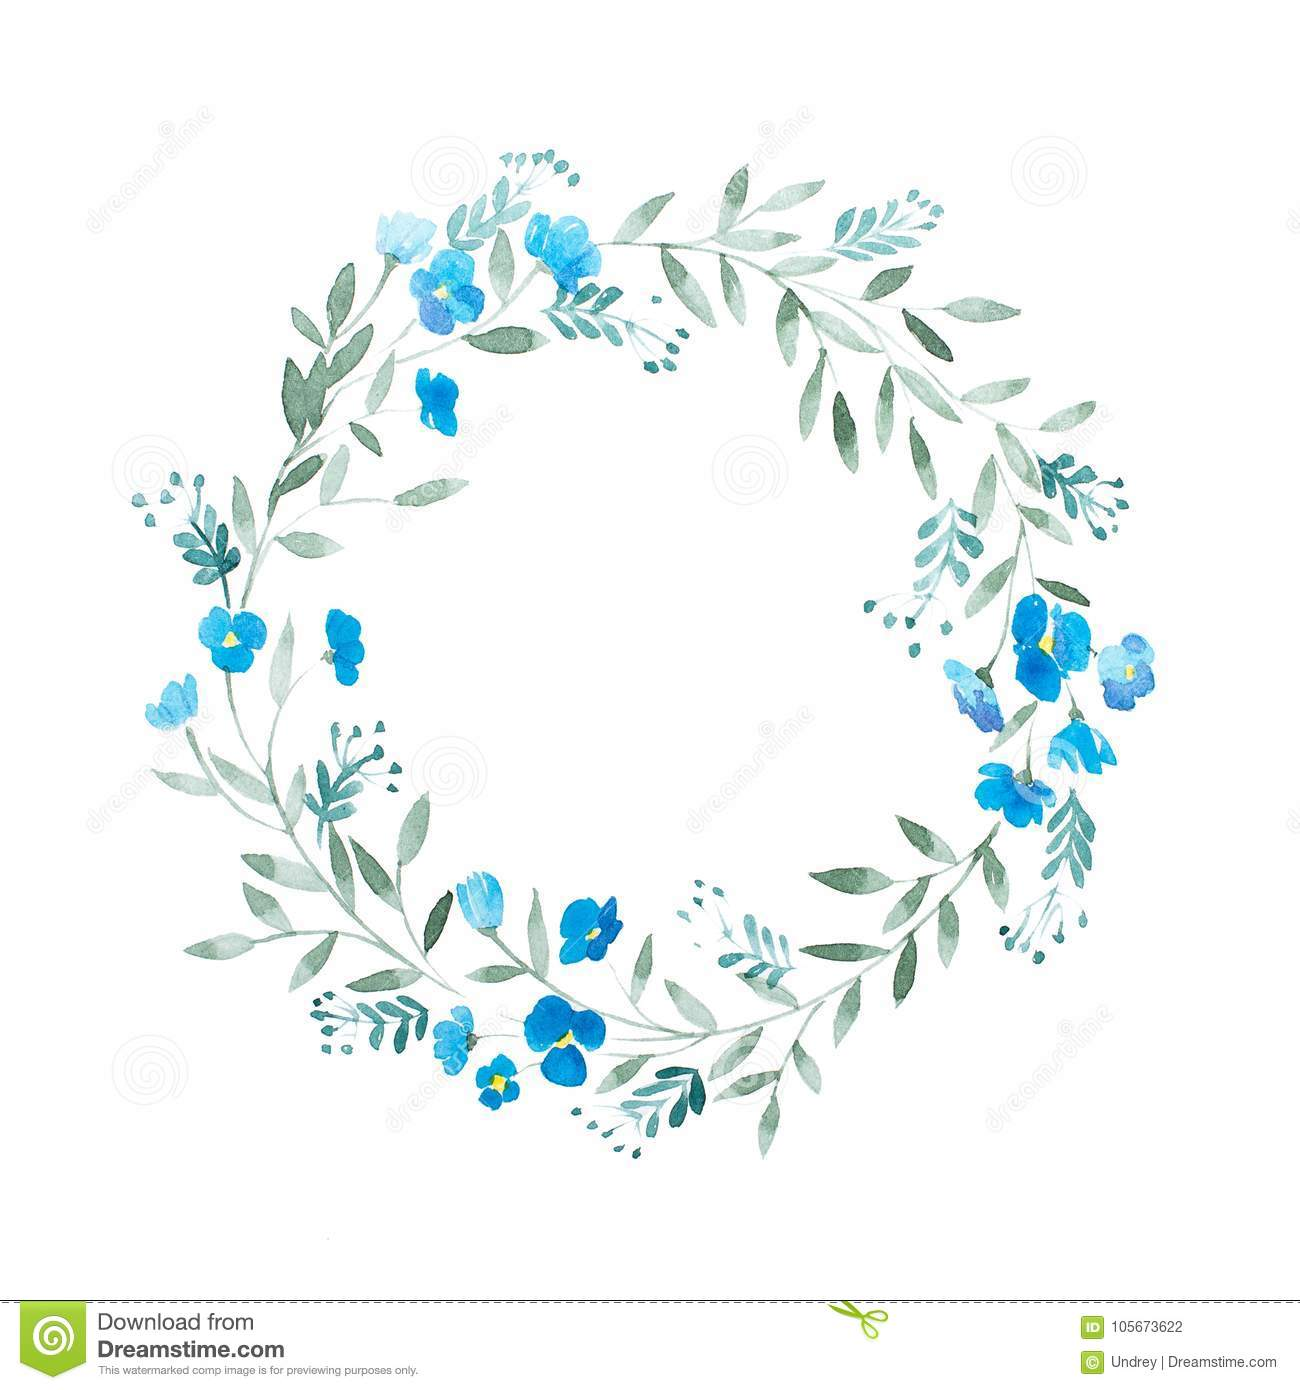 Greeting card floral frame decoration. Watercolor wreath of blue flowers isolated on white background.